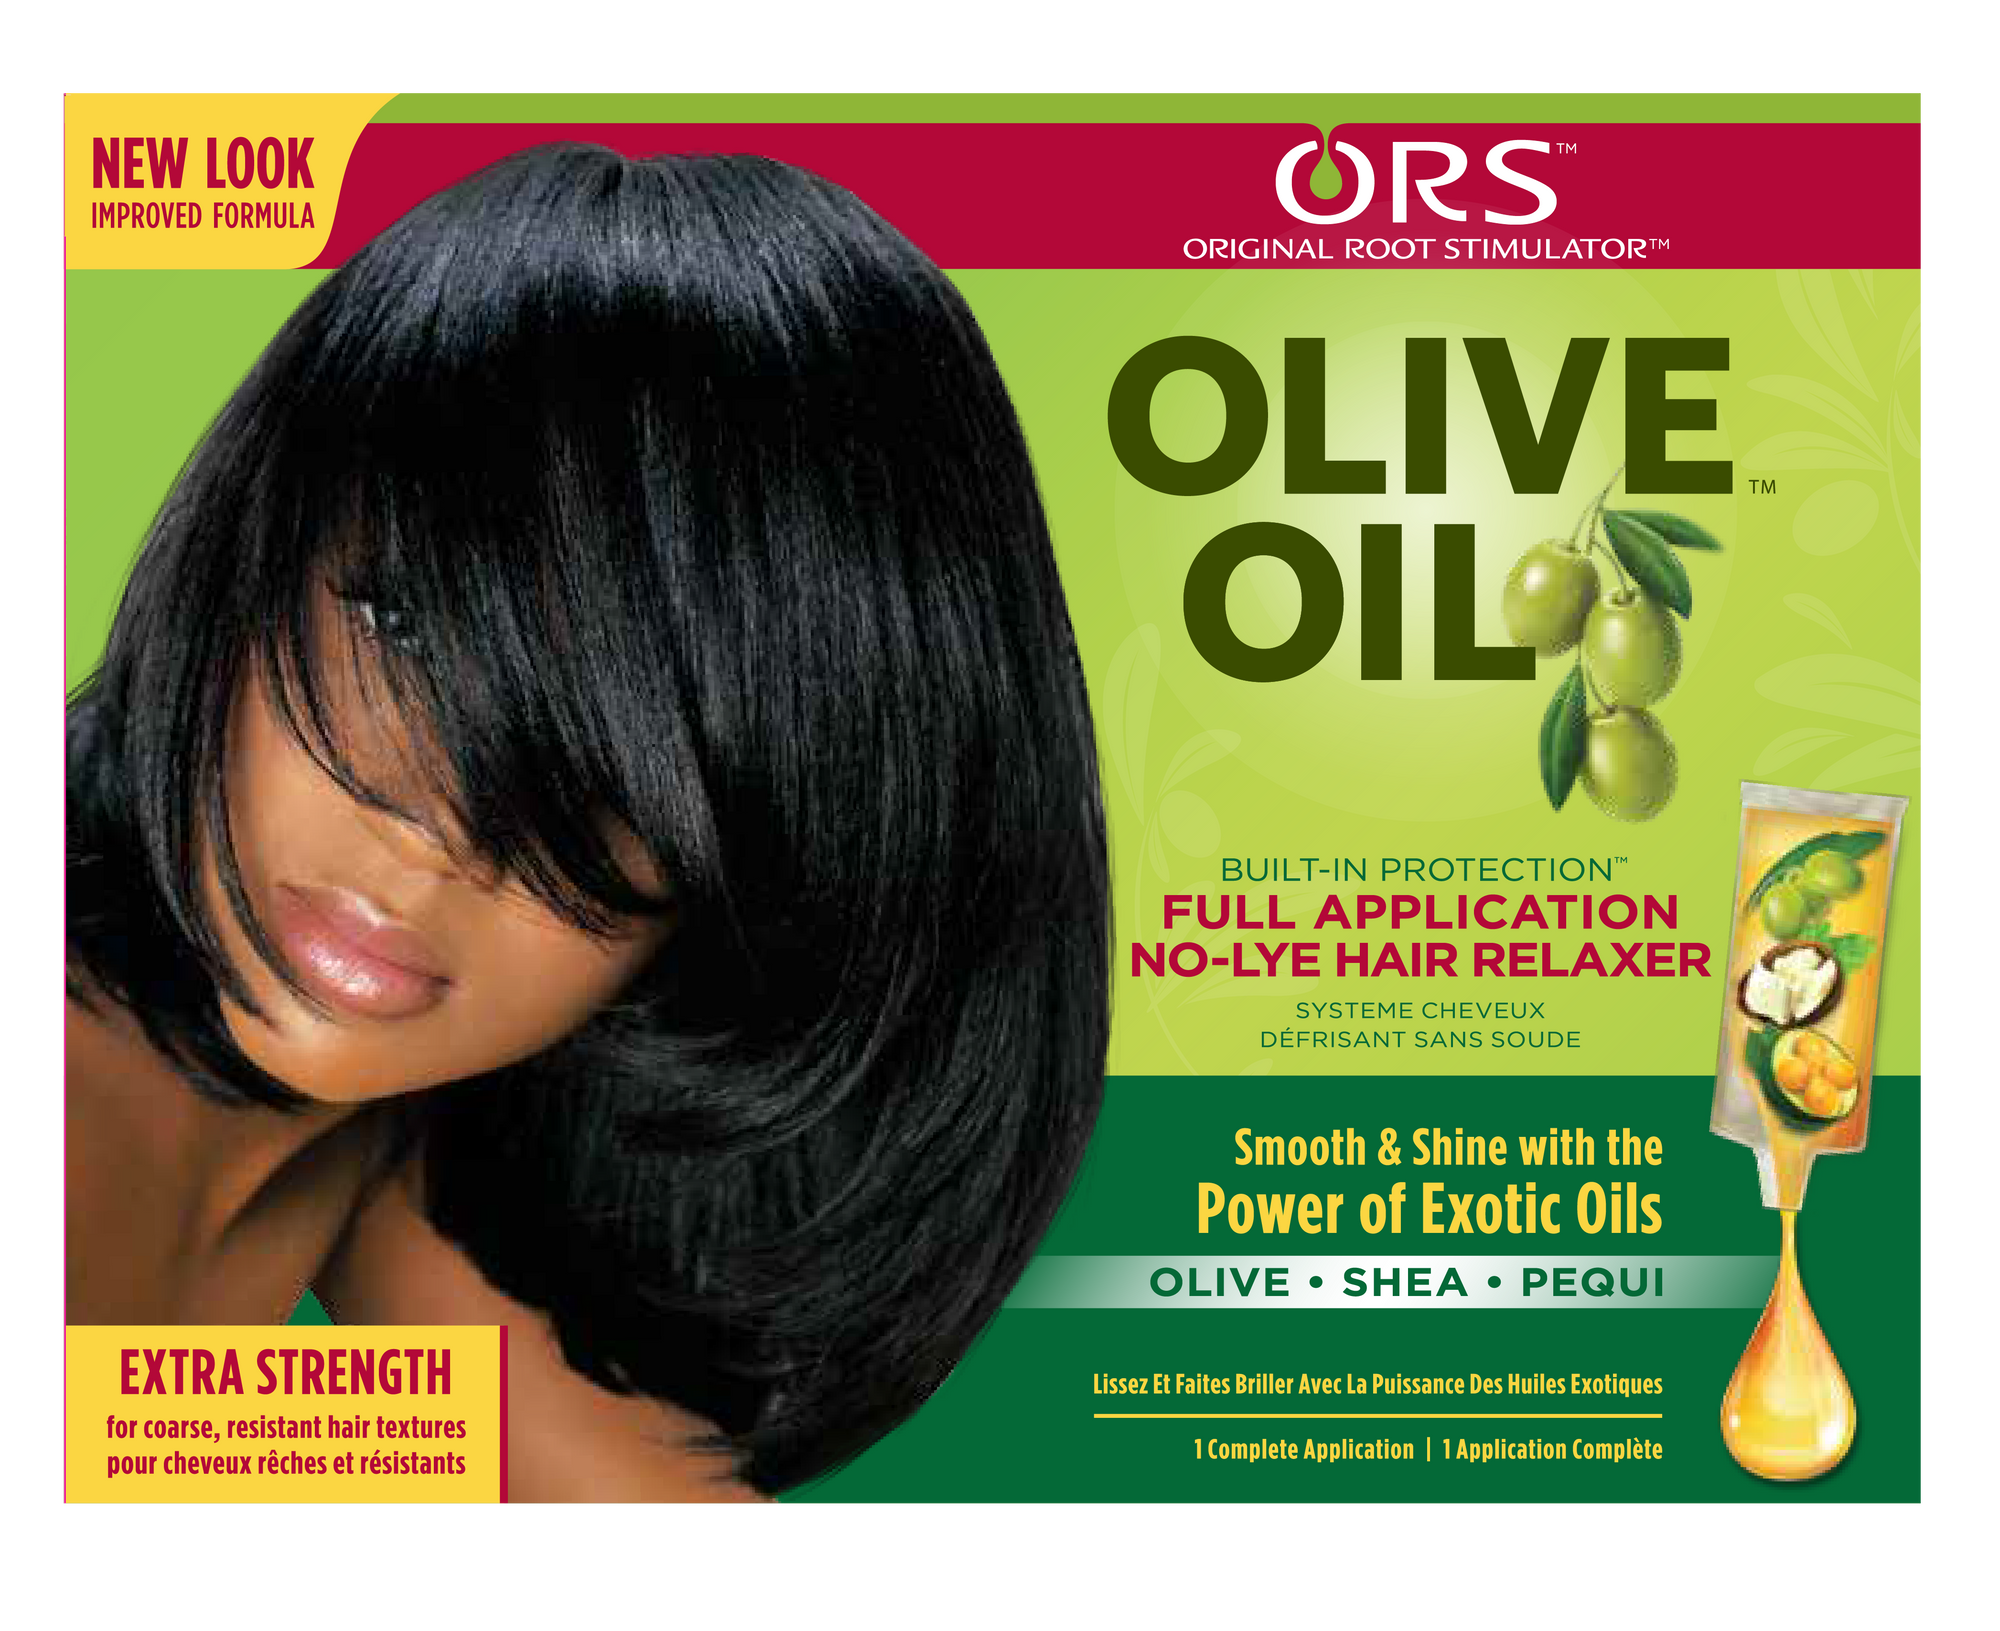 ORS Olive Oil Built in Protection No-Lye Relaxer Extra Strength 1 application